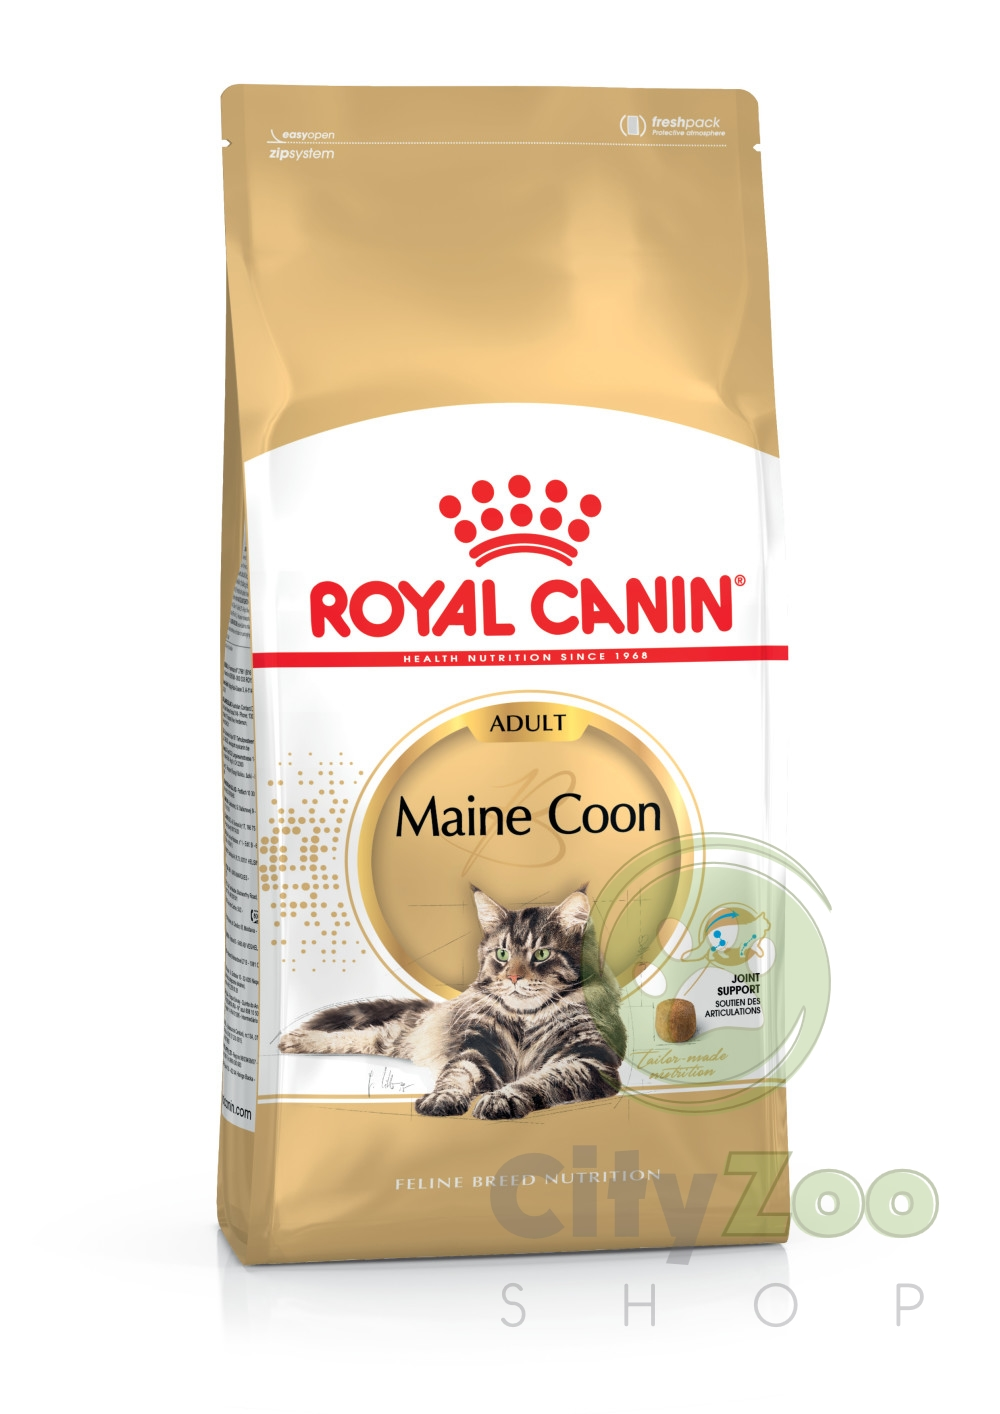 zoo/Royal_Canin_Maine_Coon